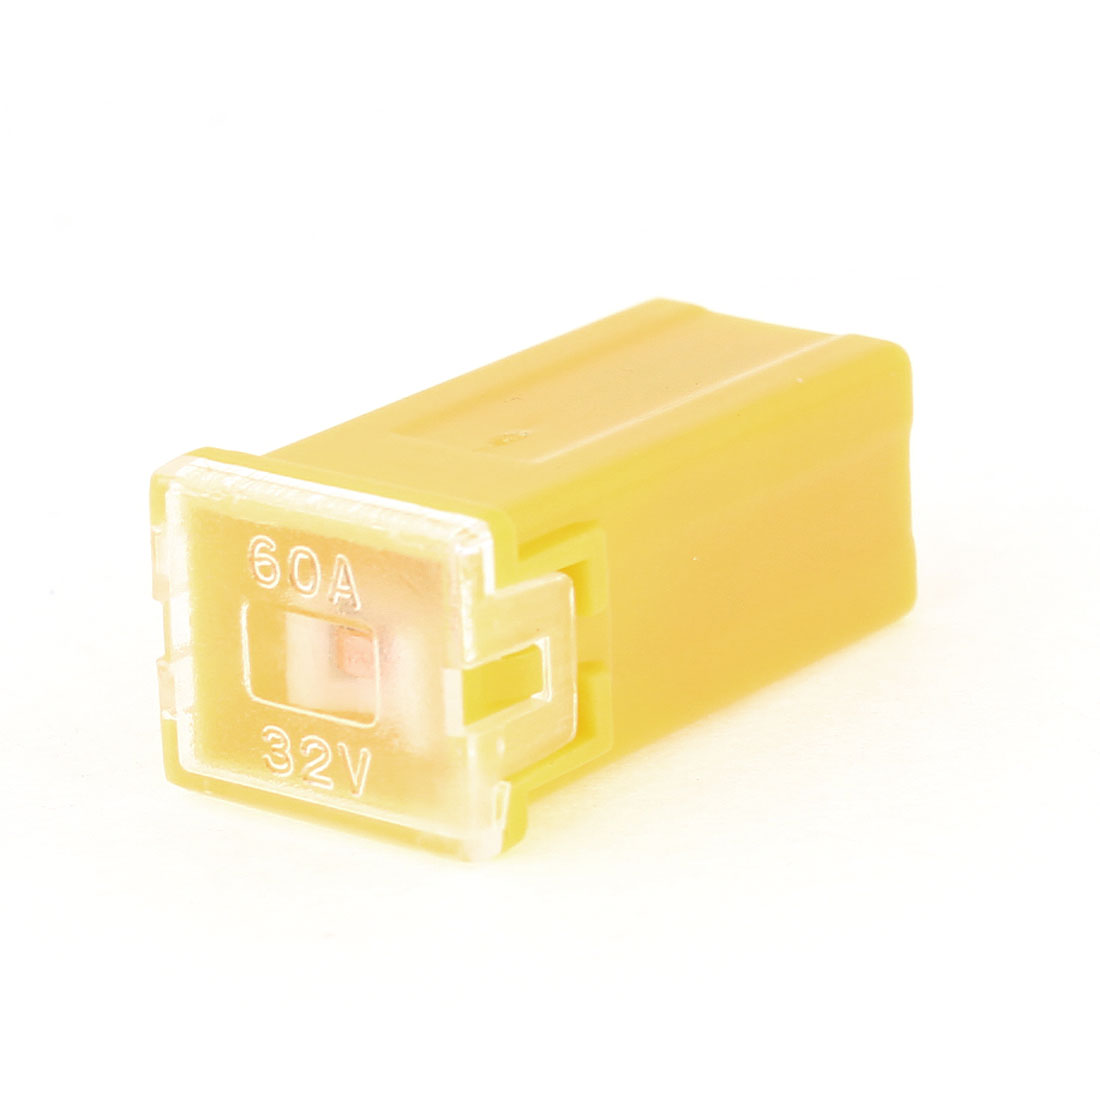 60A 32V Female PAL Slow Blow Mini Fuse Yellow for Truck SUV